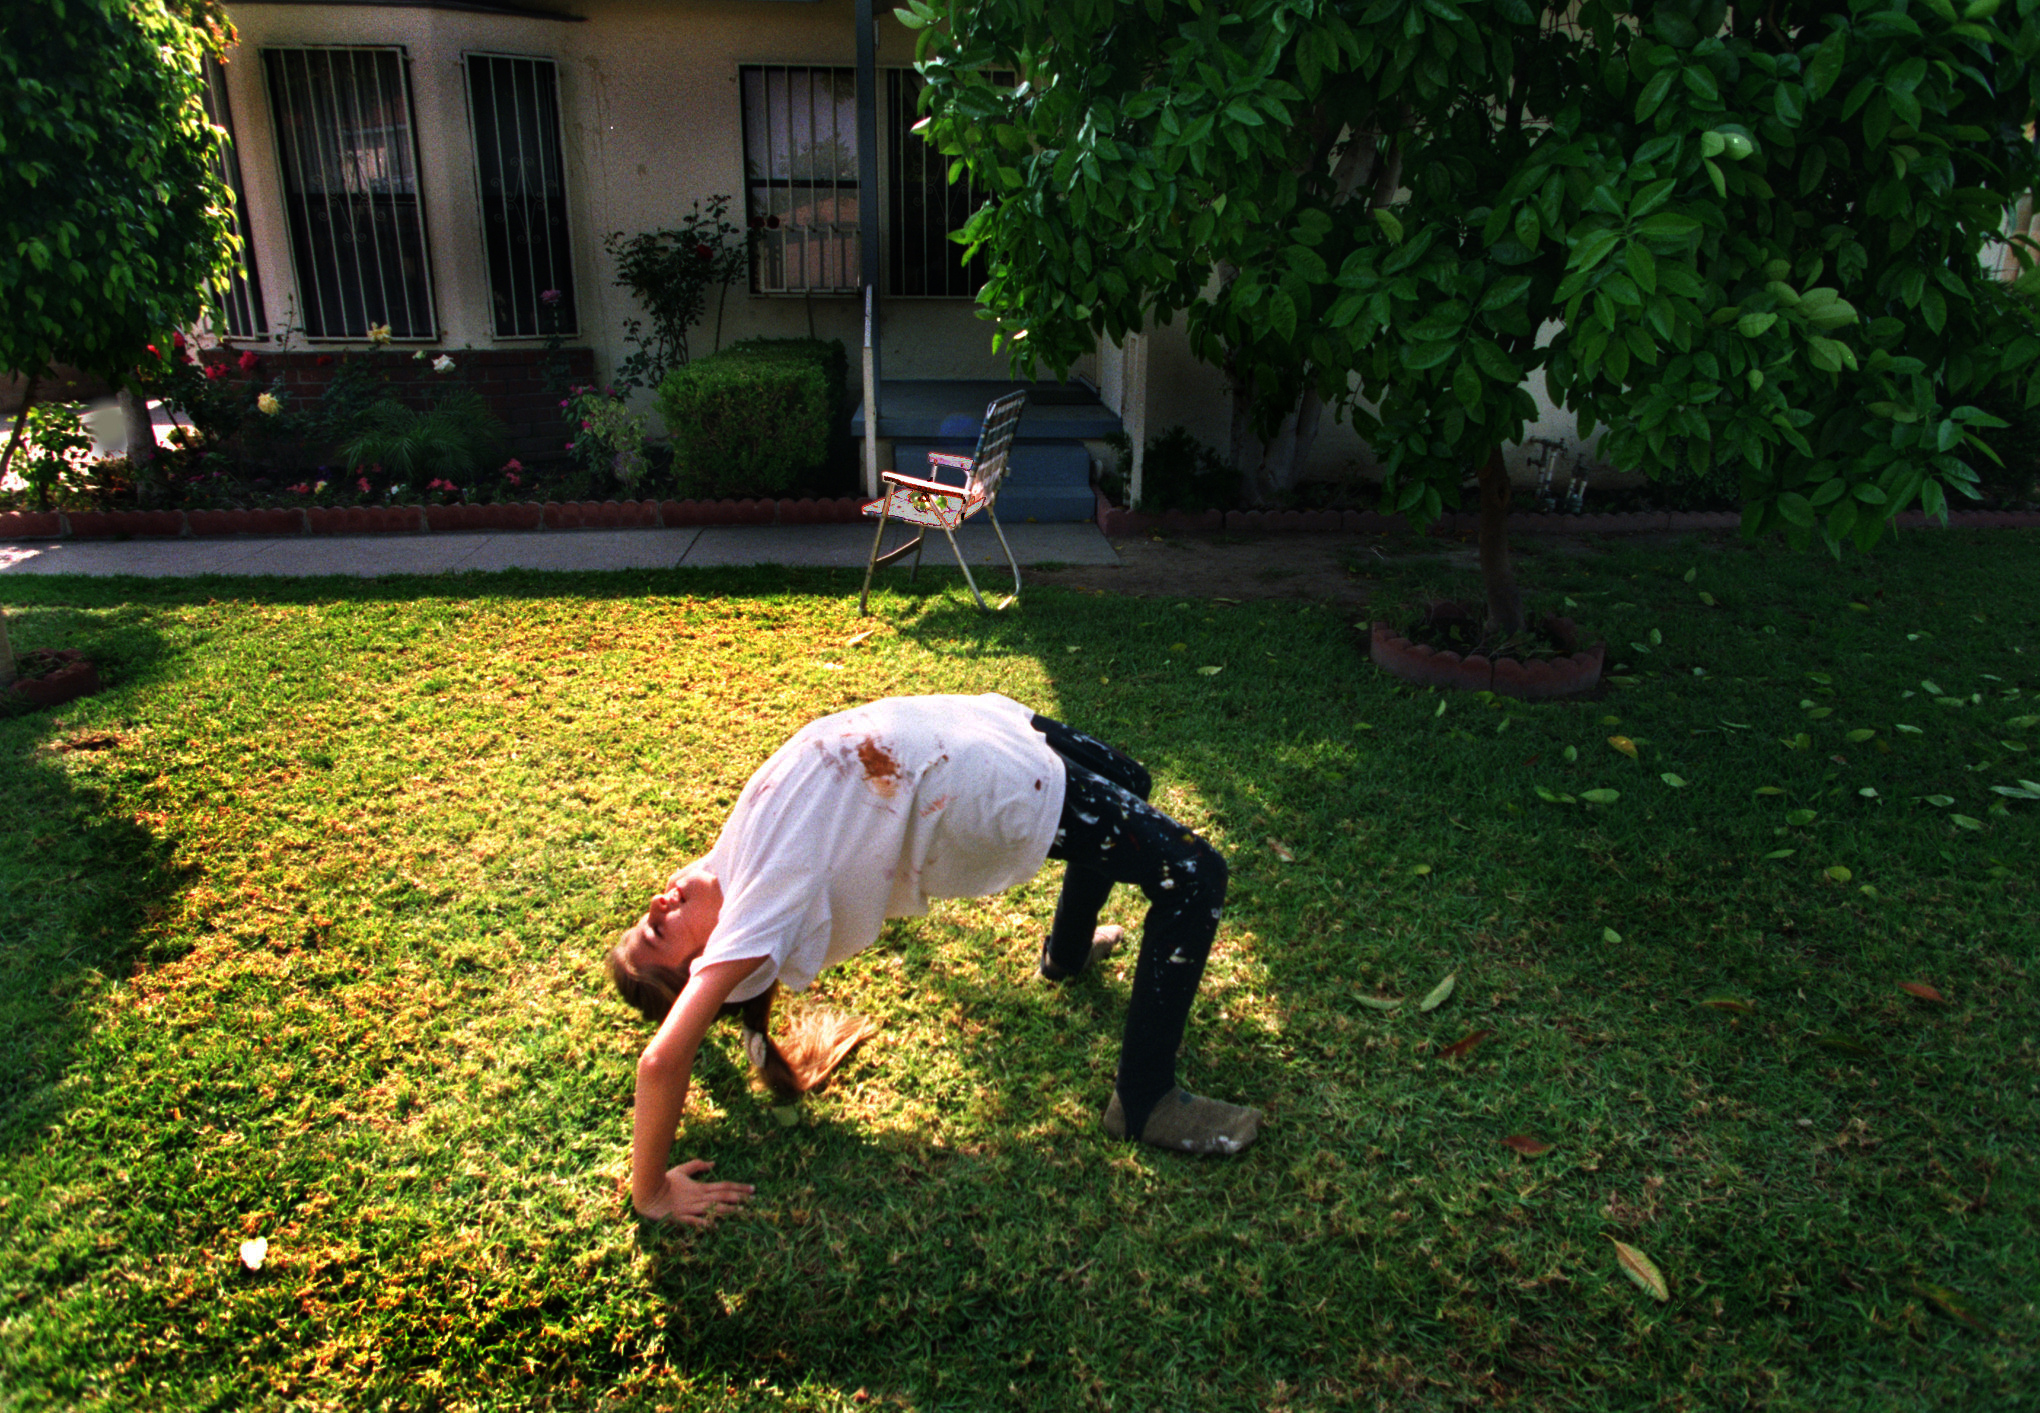 Alexandra Nechita takes a diversion from painting by turning cartwheels in the front yard of their Norwalk home. Only a wall separates their backyard from the Interstate 5. Her agent in Costa Mesa says if it were up to him, he'd move the family tomorrow, that the neighborhood worries him sick. ©Gail Fisher Los Angeles Times